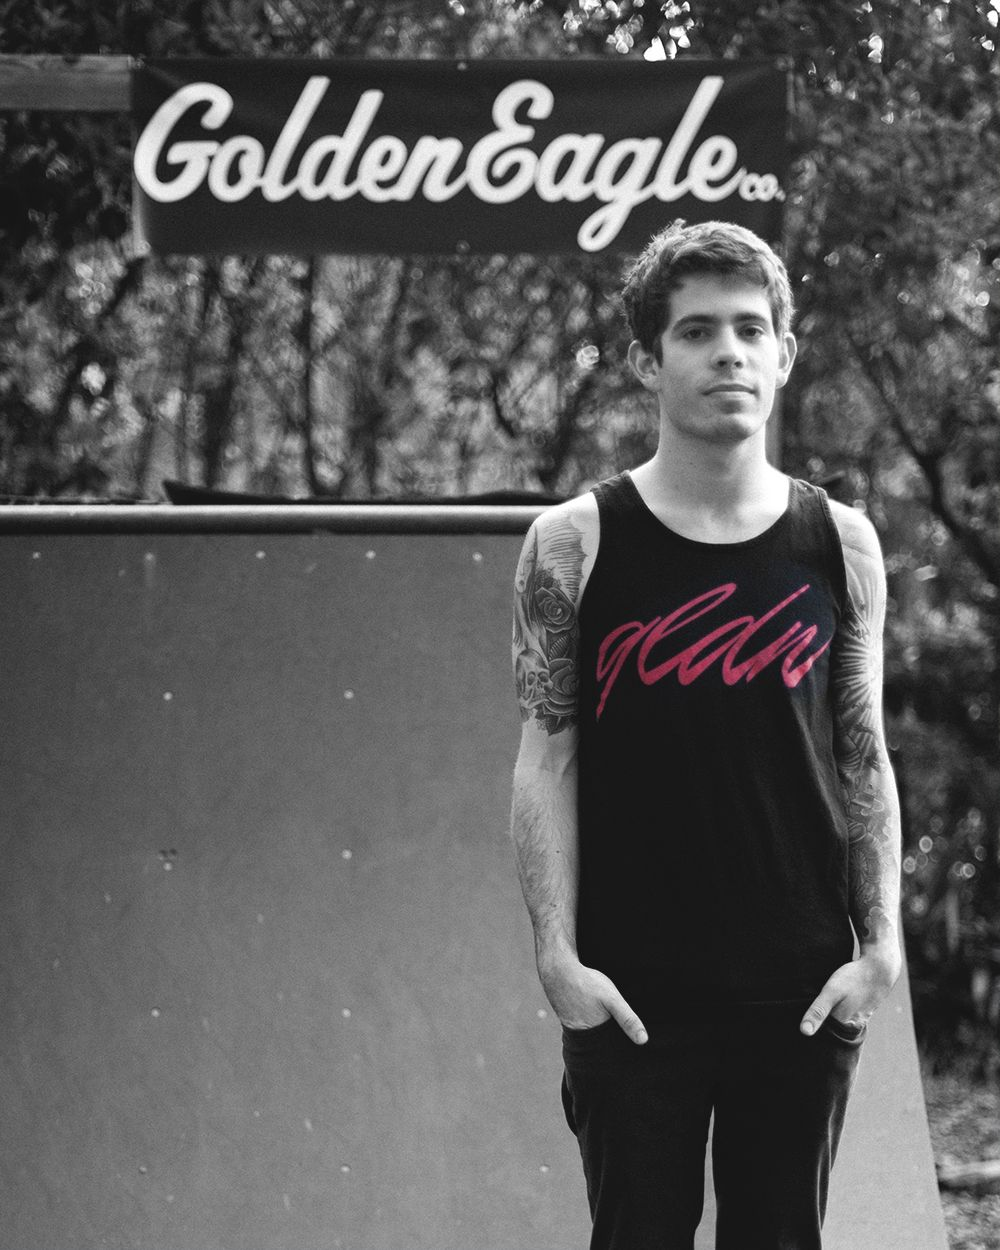 301 Moved Permanently A Day To Remember Golden Eagle